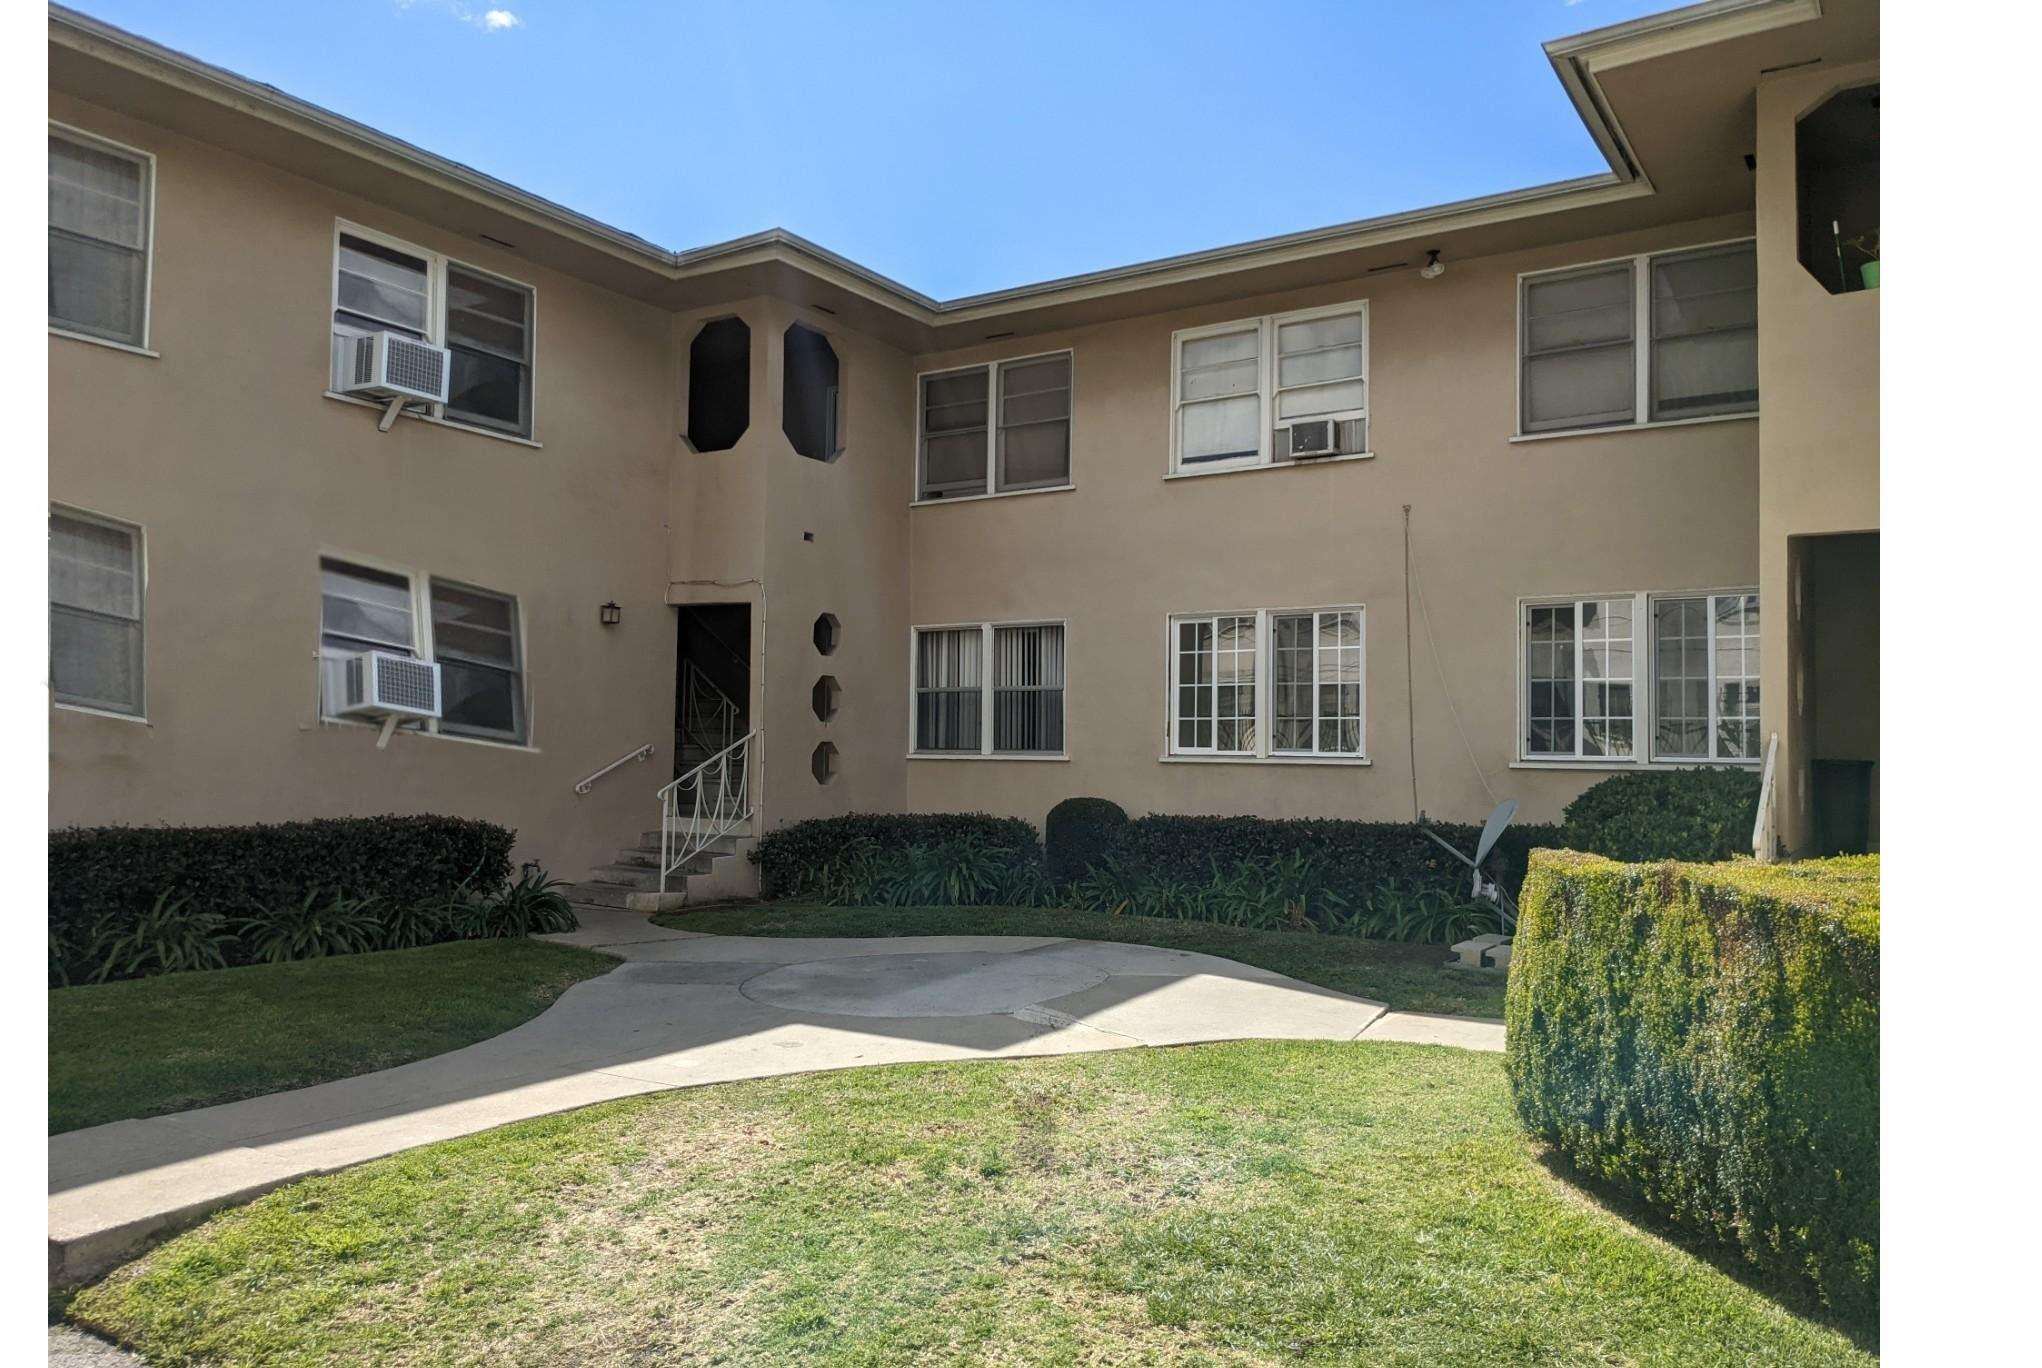 3900 W Adams Boulevard Property Photo - Other, CA real estate listing